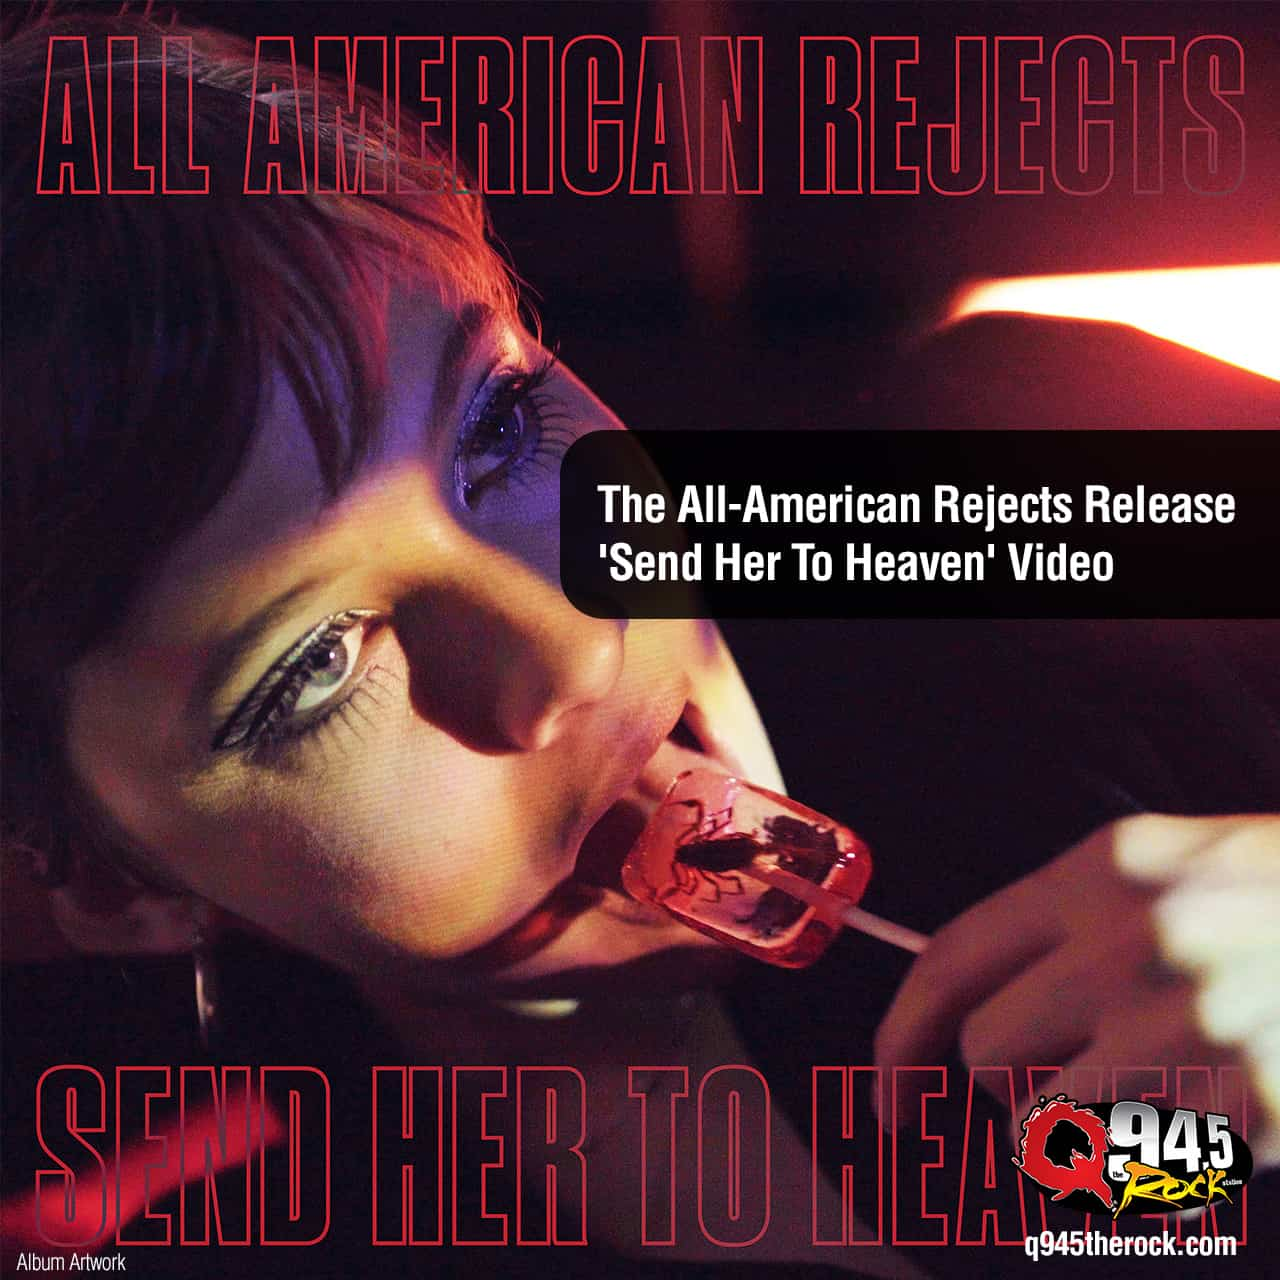 The All-American Rejects Release 'Send Her To Heaven' Video